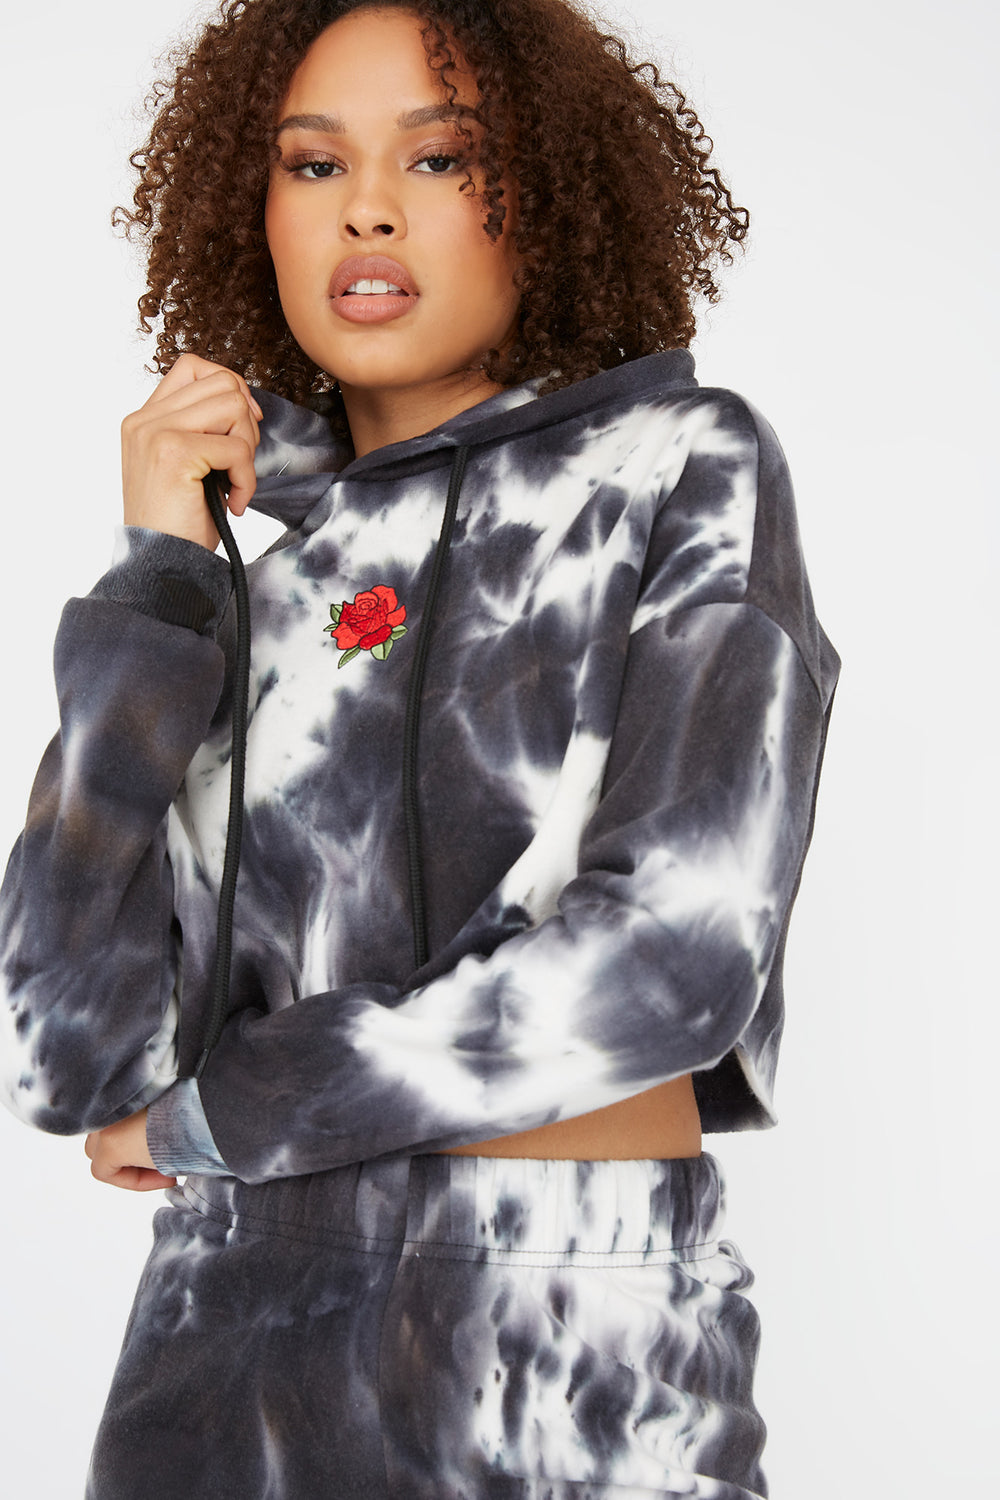 Fleece Graphic Raw Hem Cropped Hoodie Black with White